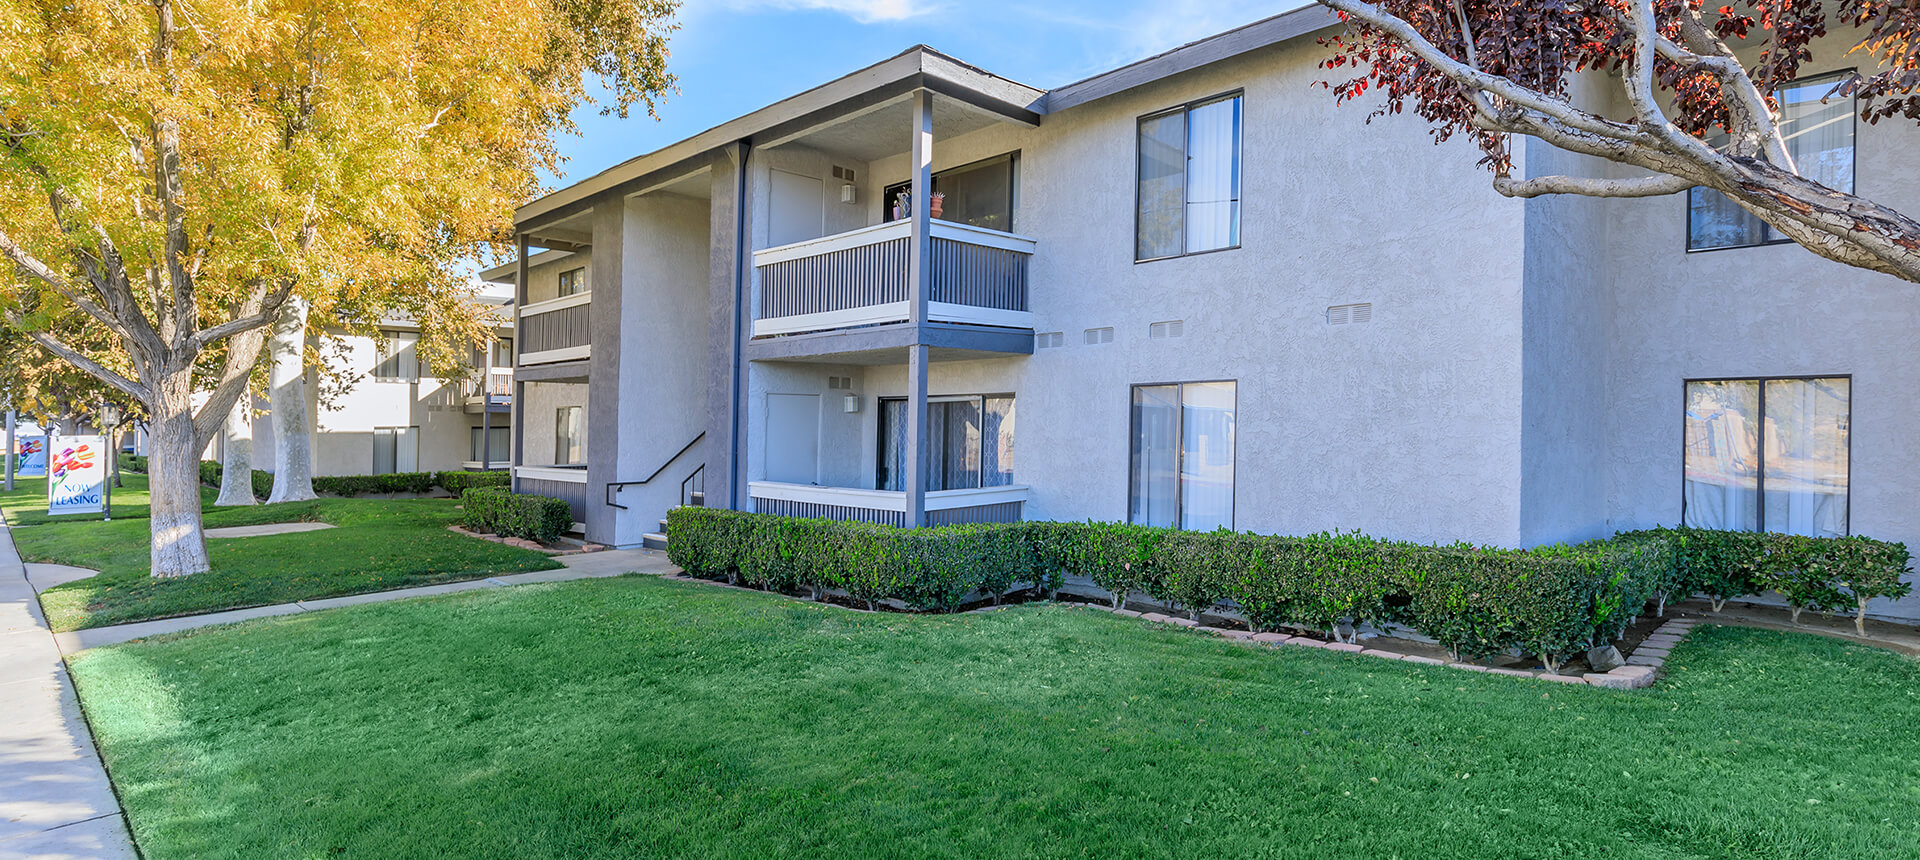 Carmel Apartments - Apartments in Palmdale, CA